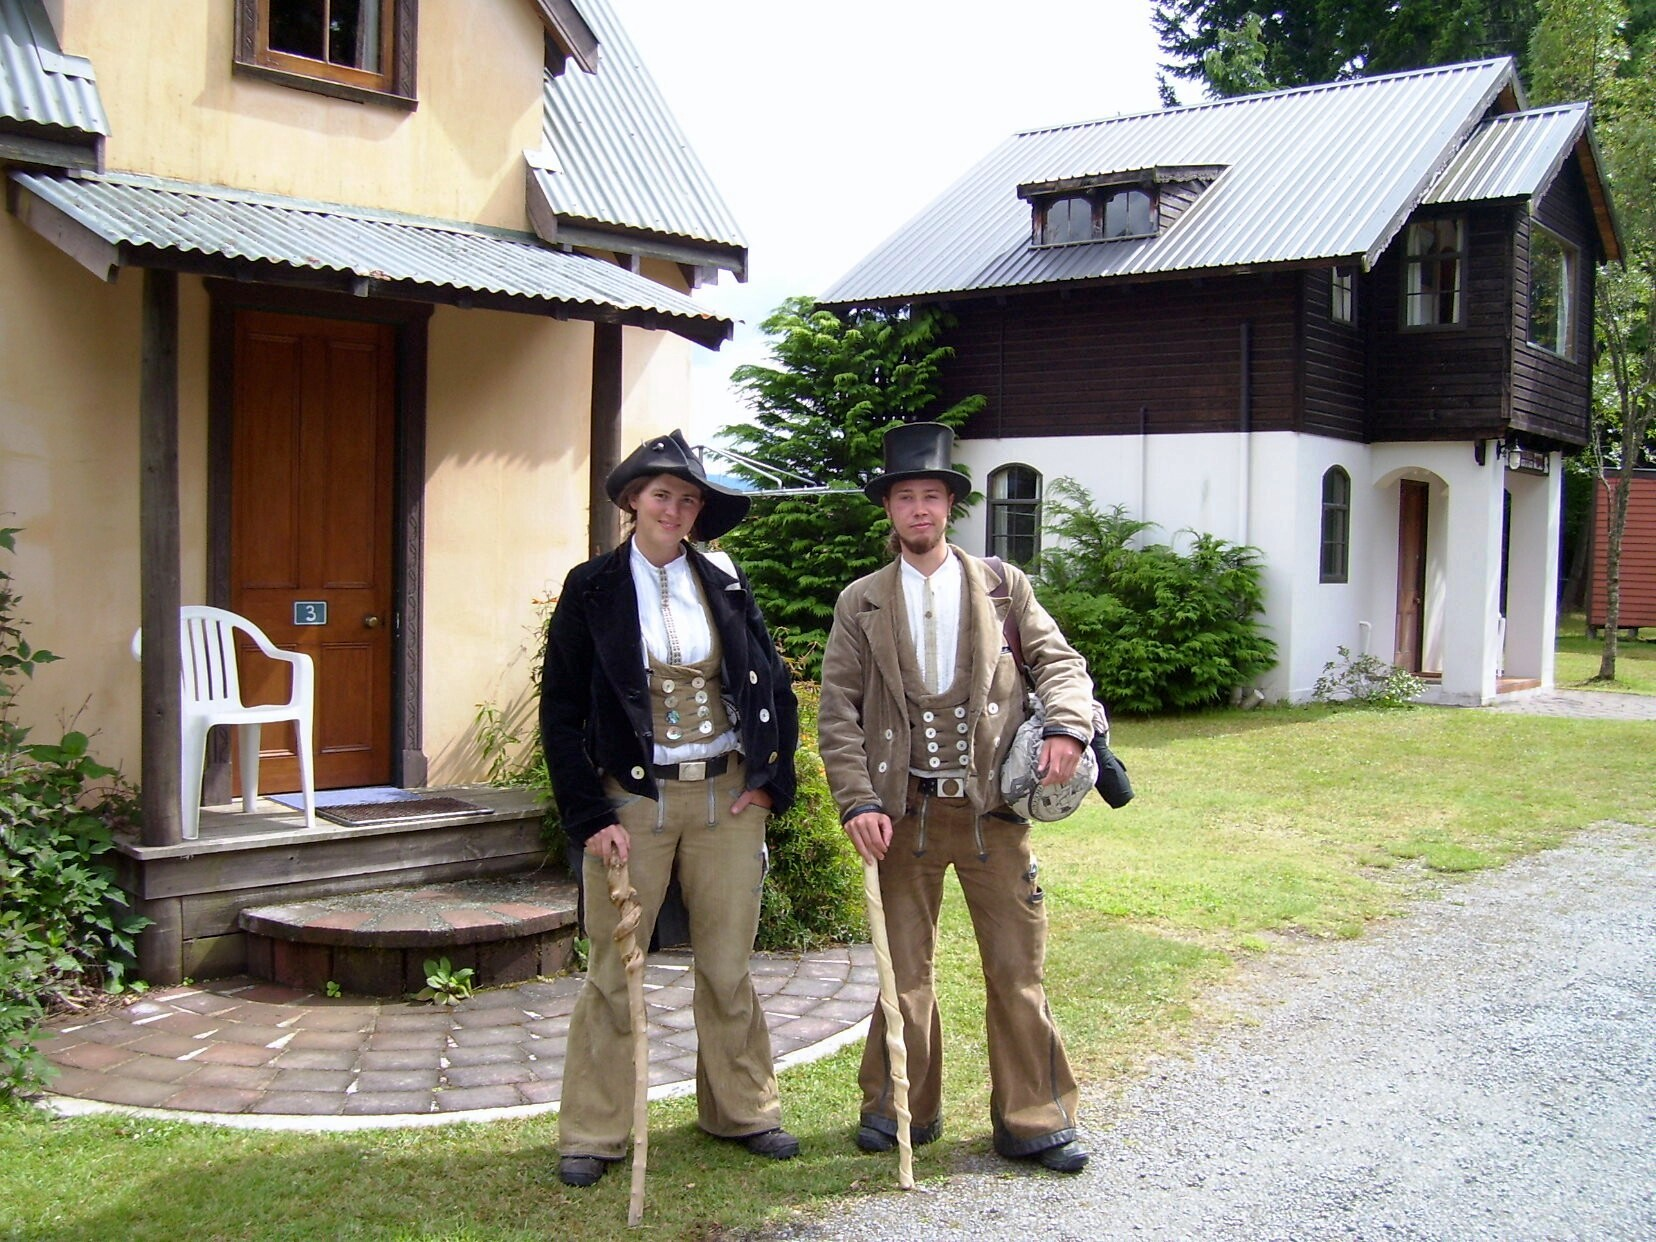 Two German apprentices in guild costume at the camp